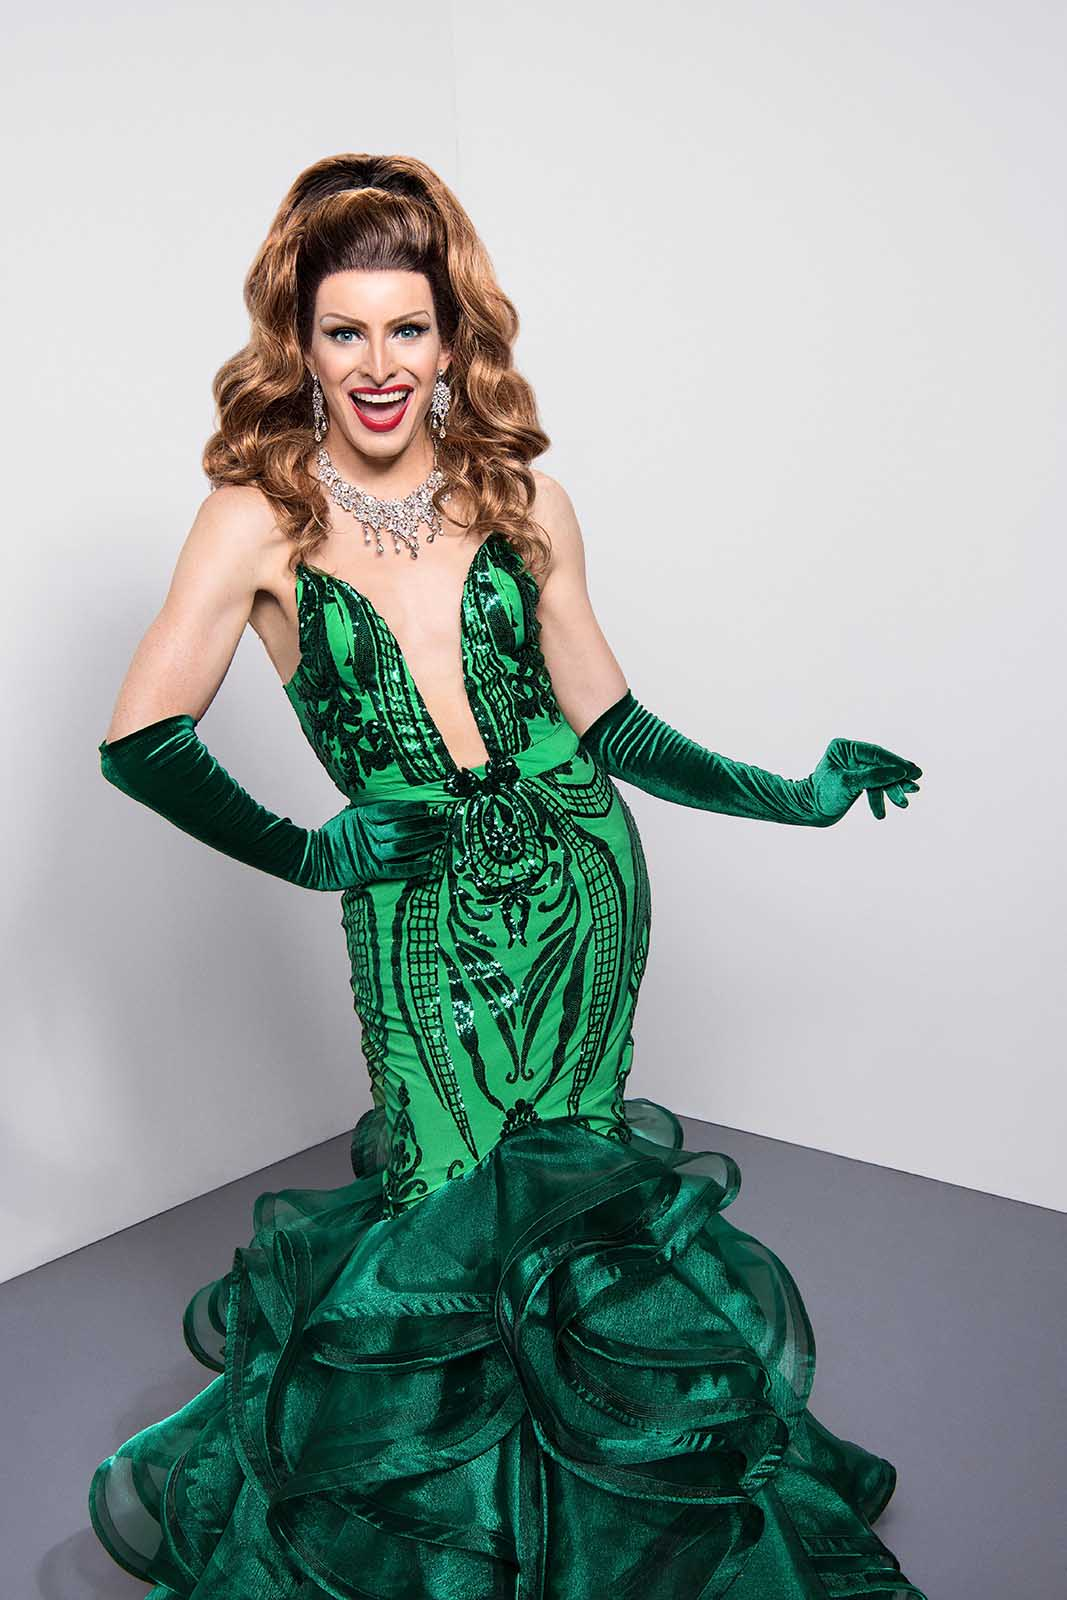 While the other queens of 'Drag Race UK' returned, Veronica Green was sidelined after testing positive from COVID. Hear her spill the tea on the season.